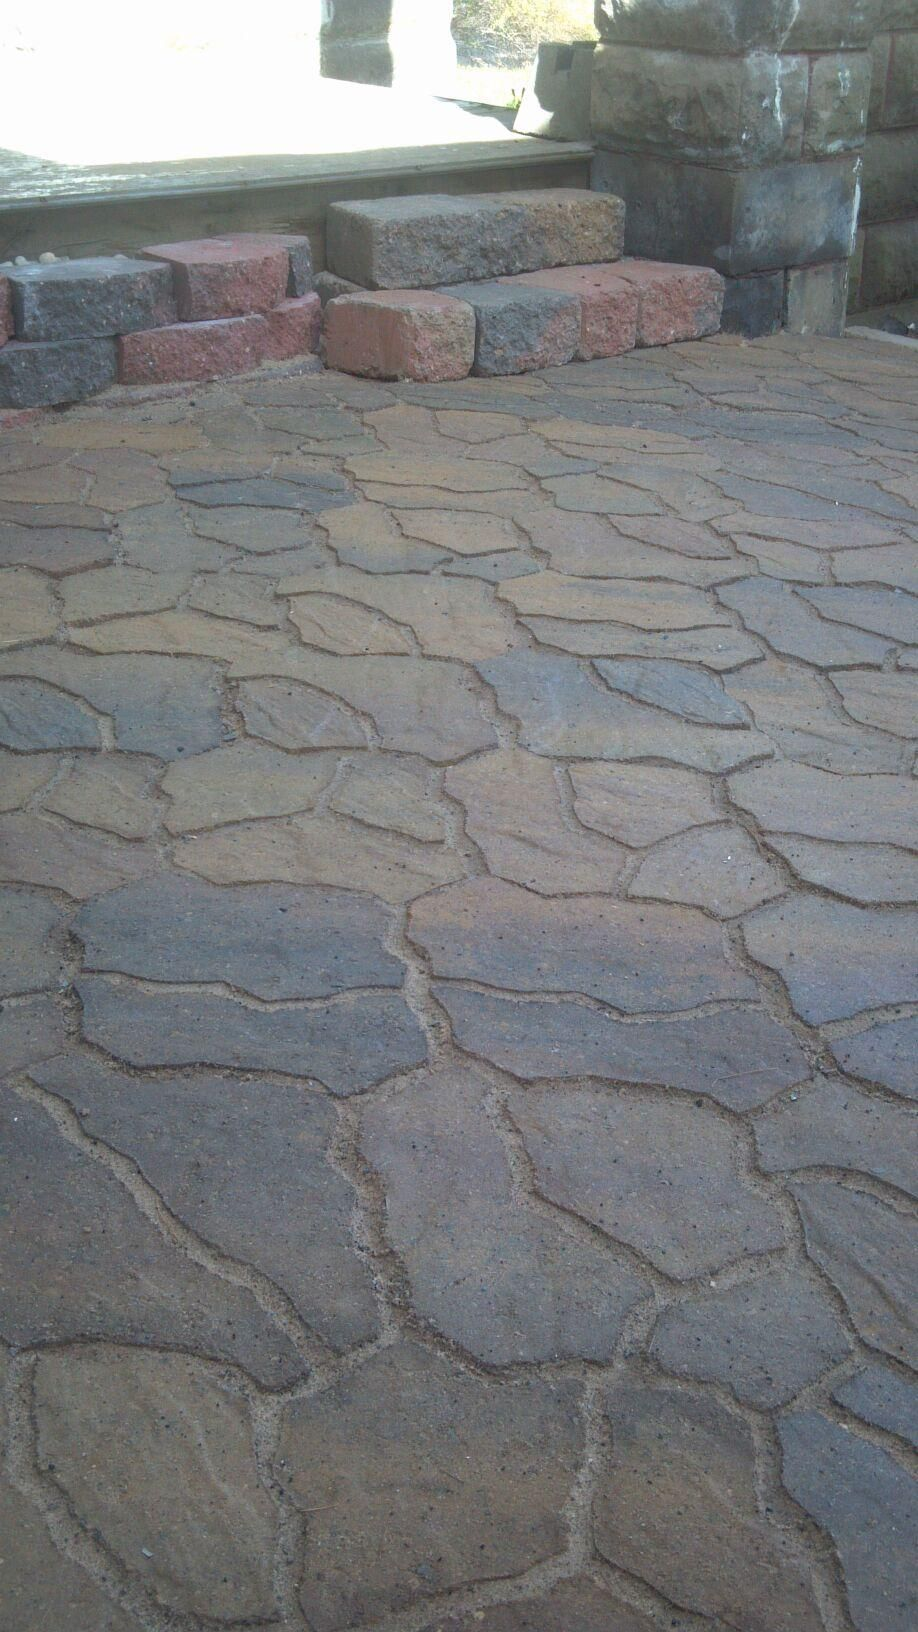 More Flagstone Fun Siena Flagstone From Menards Border Was Done With Crestone Ii Reatining Wall From Menar Home Garden Design Patio Landscaping Patio Design